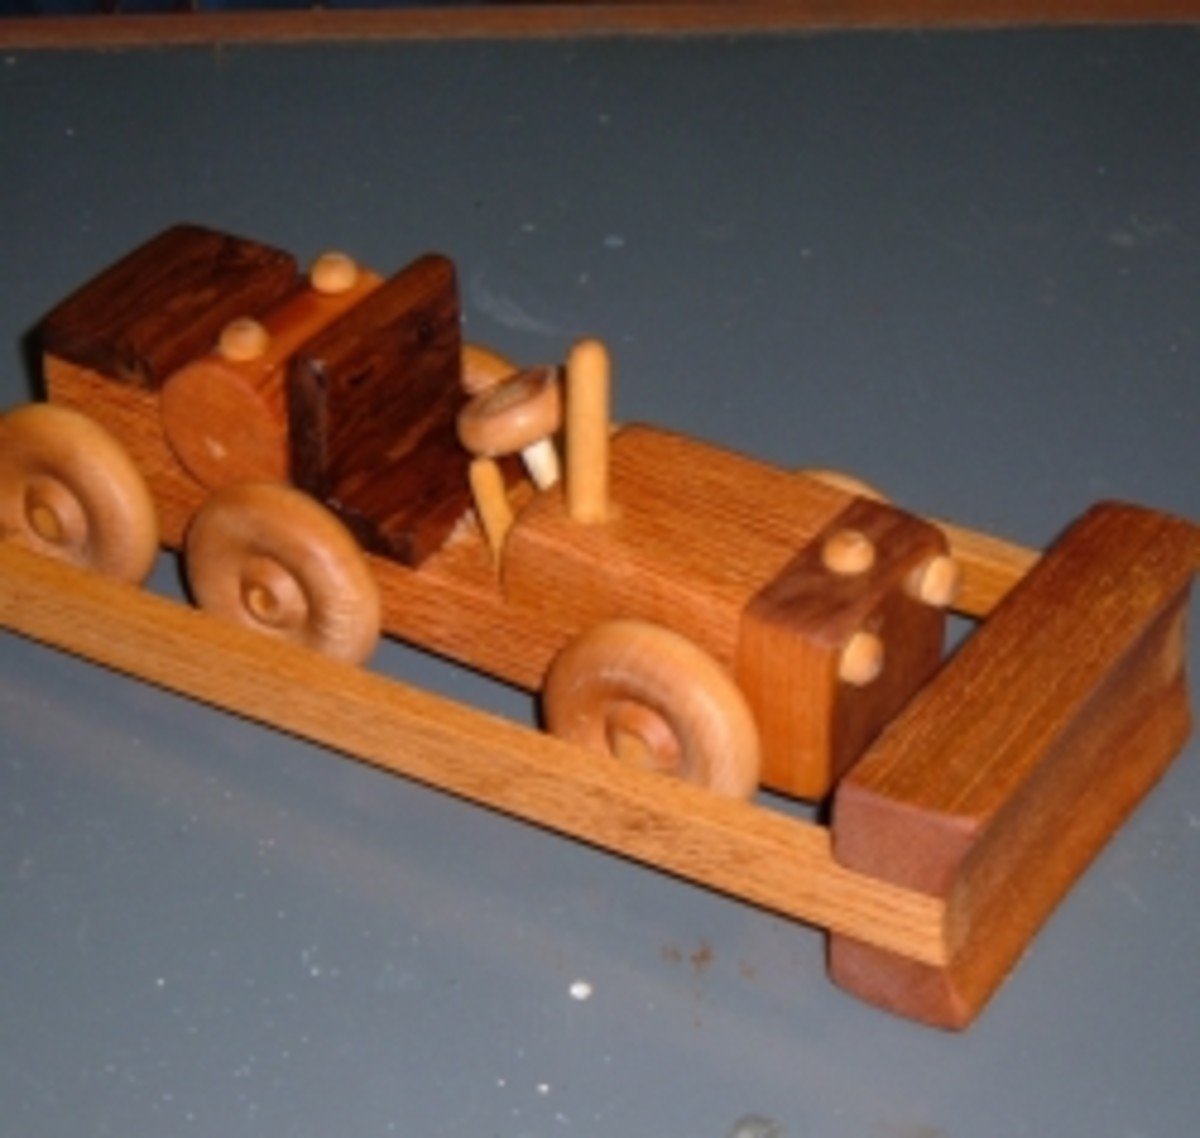 Build This Wooden Toy Bulldozer